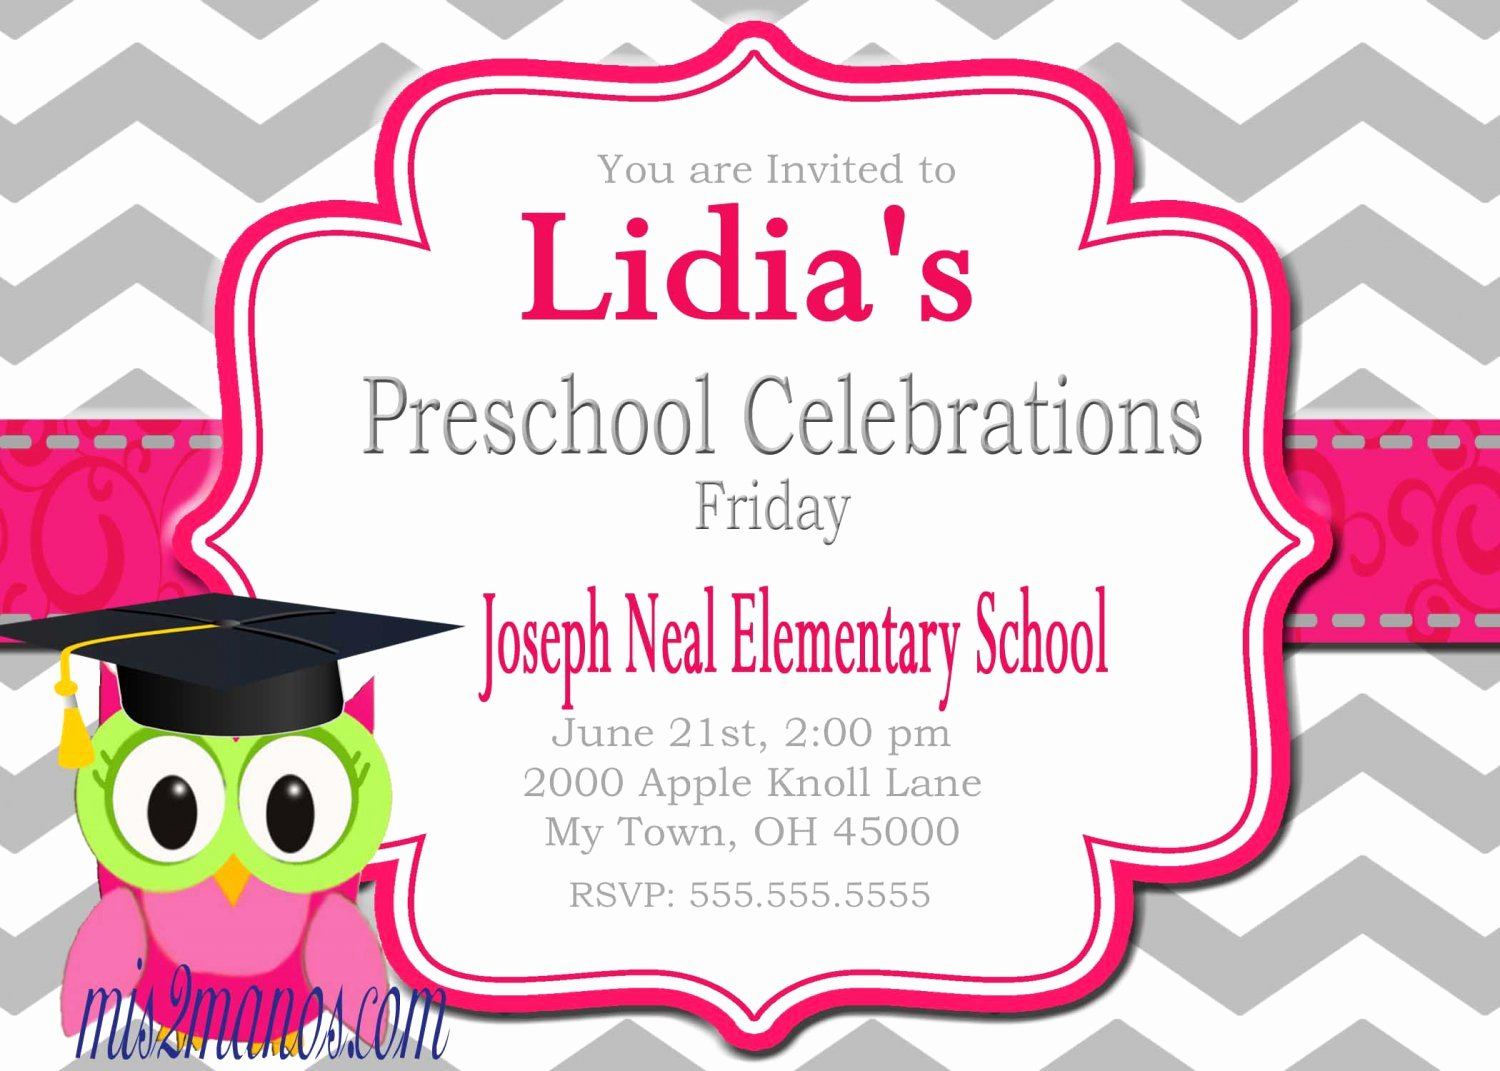 Free Downloadable Graduation Invitations Unique Preschool Graduation Invitations Printable Invites